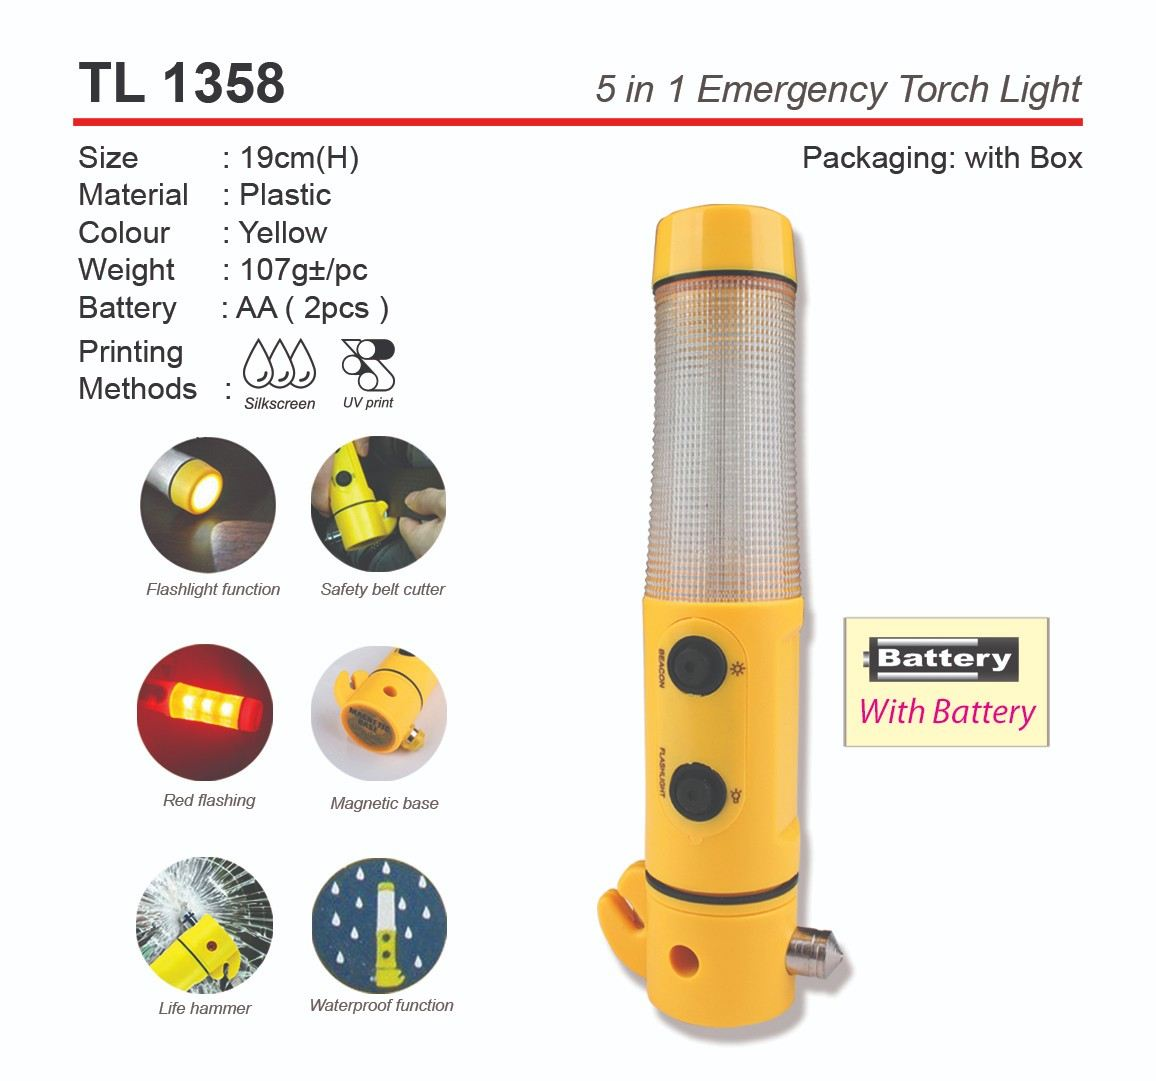 TL1358 5 in 1 Emergency Torch Light